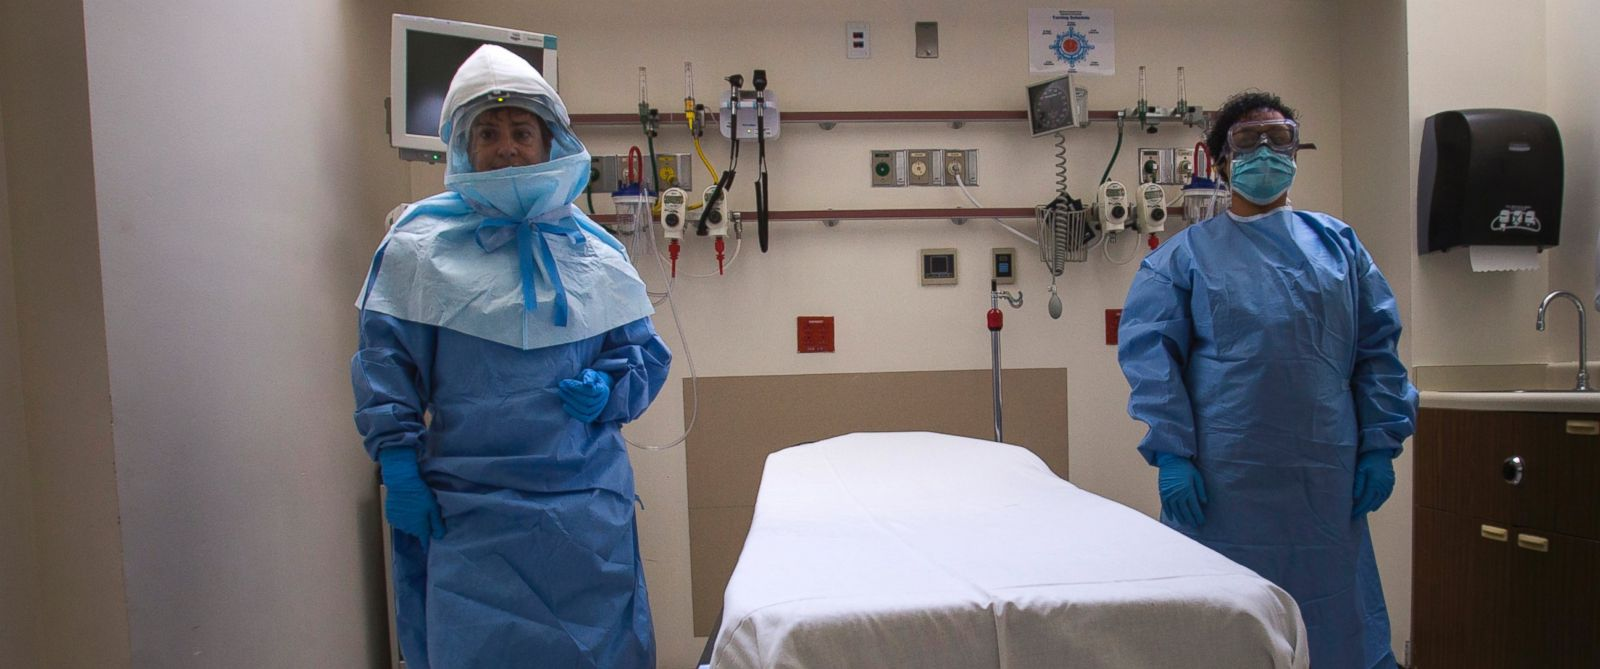 PHOTO: Health care workers display protective gear inside an isolation room as part of a media tour of the emergency department of Bellevue Hospital in New York City, Oct. 8, 2014.